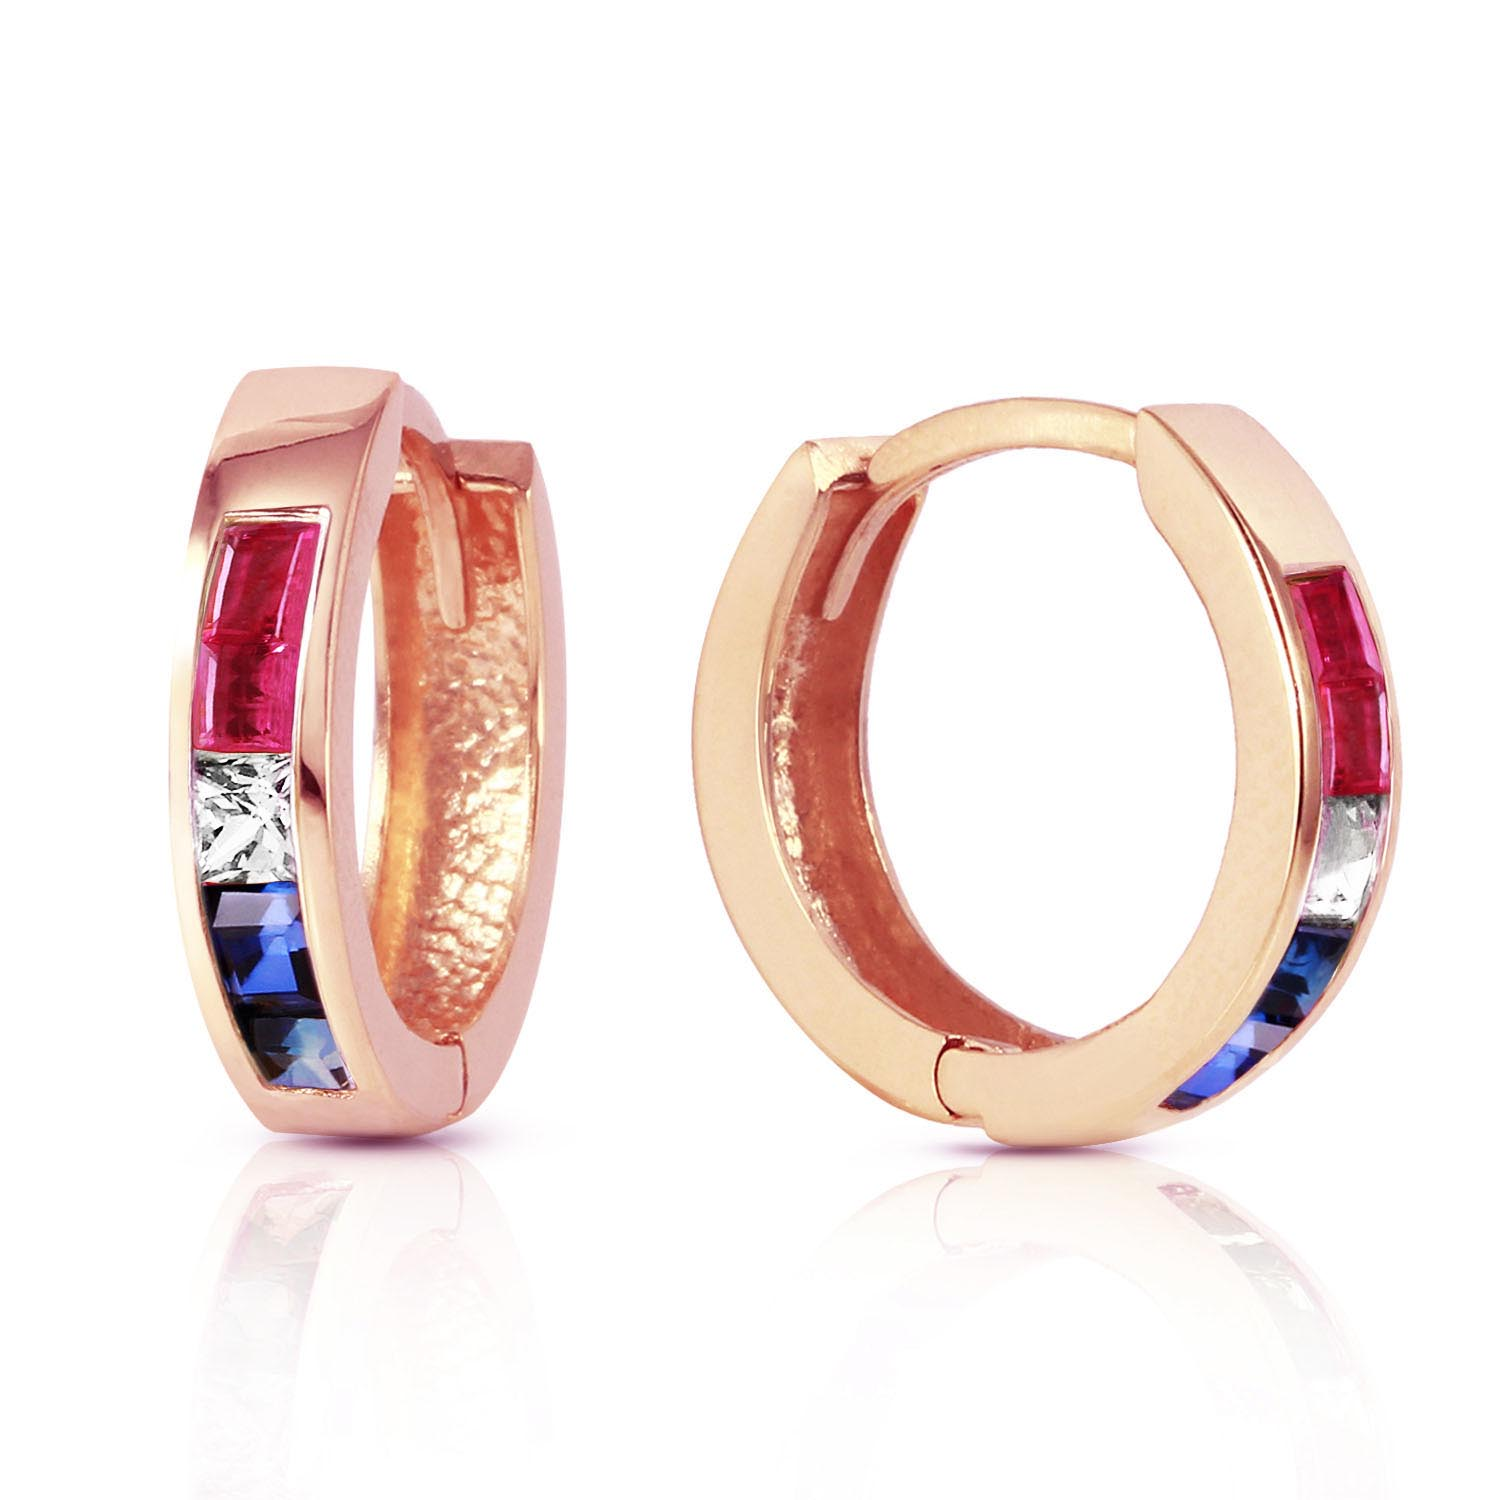 Gemstone Huggie Earrings 1.28 ctw in 9ct Rose Gold